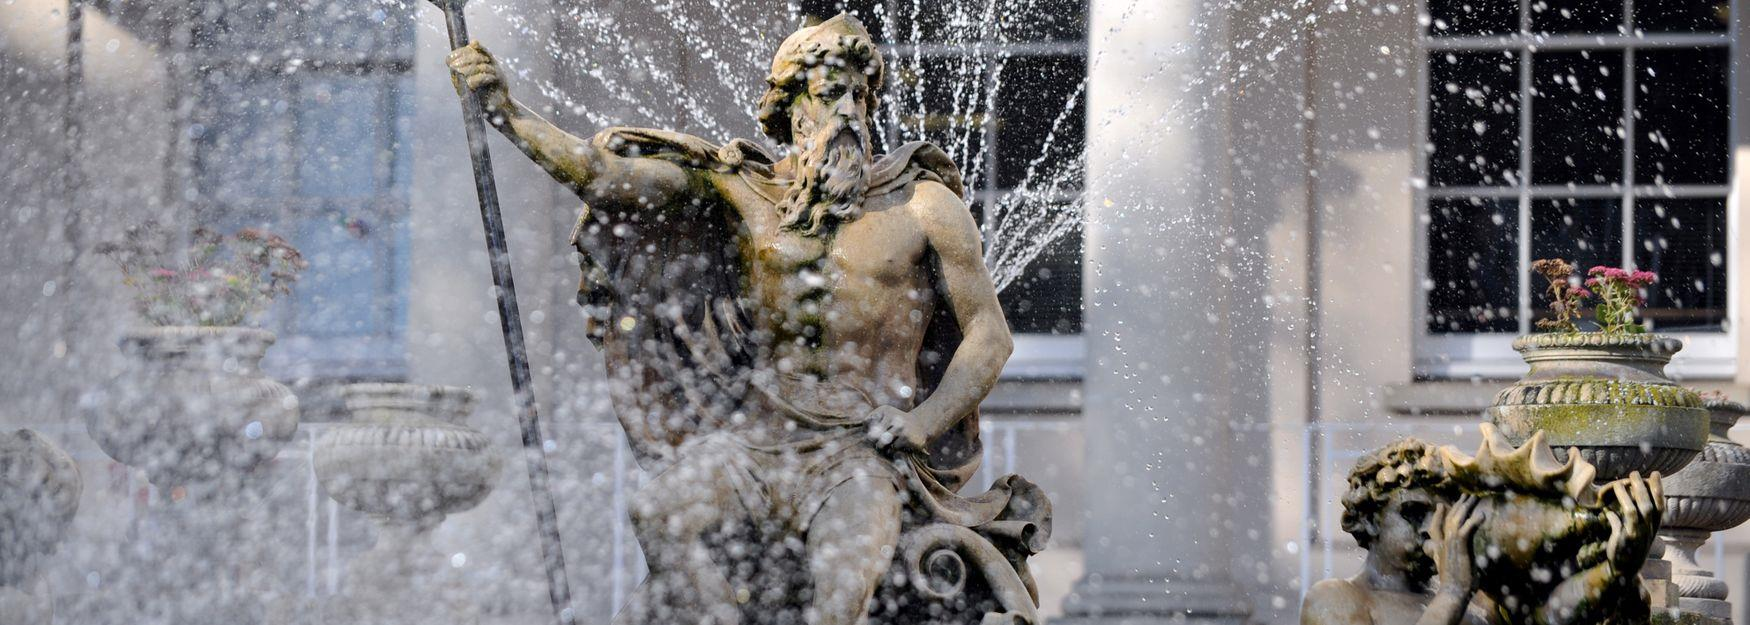 Neptune's Fountain - Water Feature on The Promenade